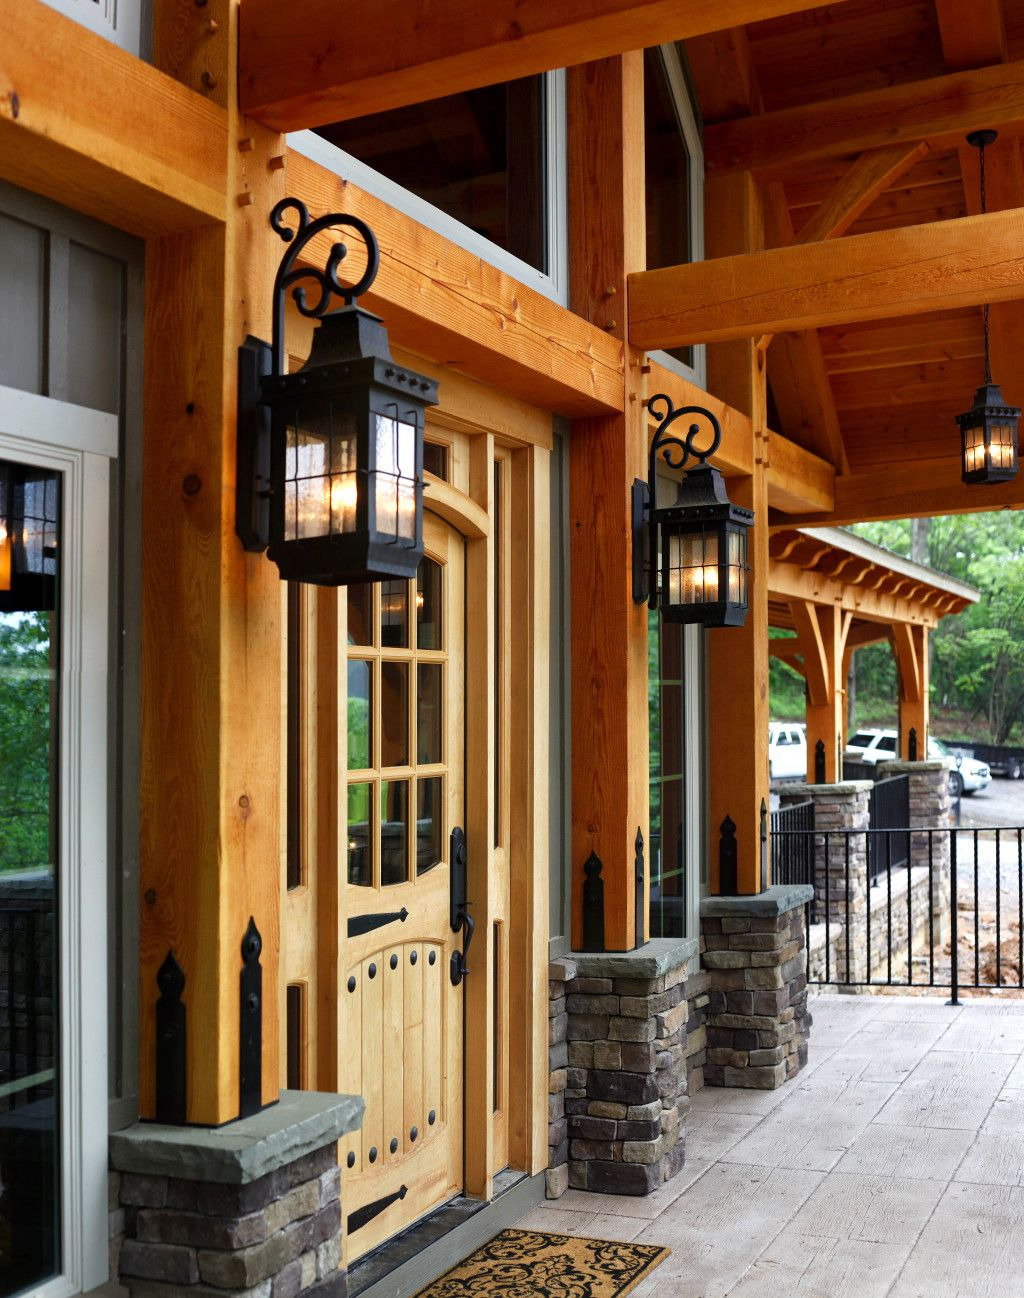 timber frame homes interior pictures top 20 luxury log timber frame and hybrid homes of 2015 from the home decor discovery munity at